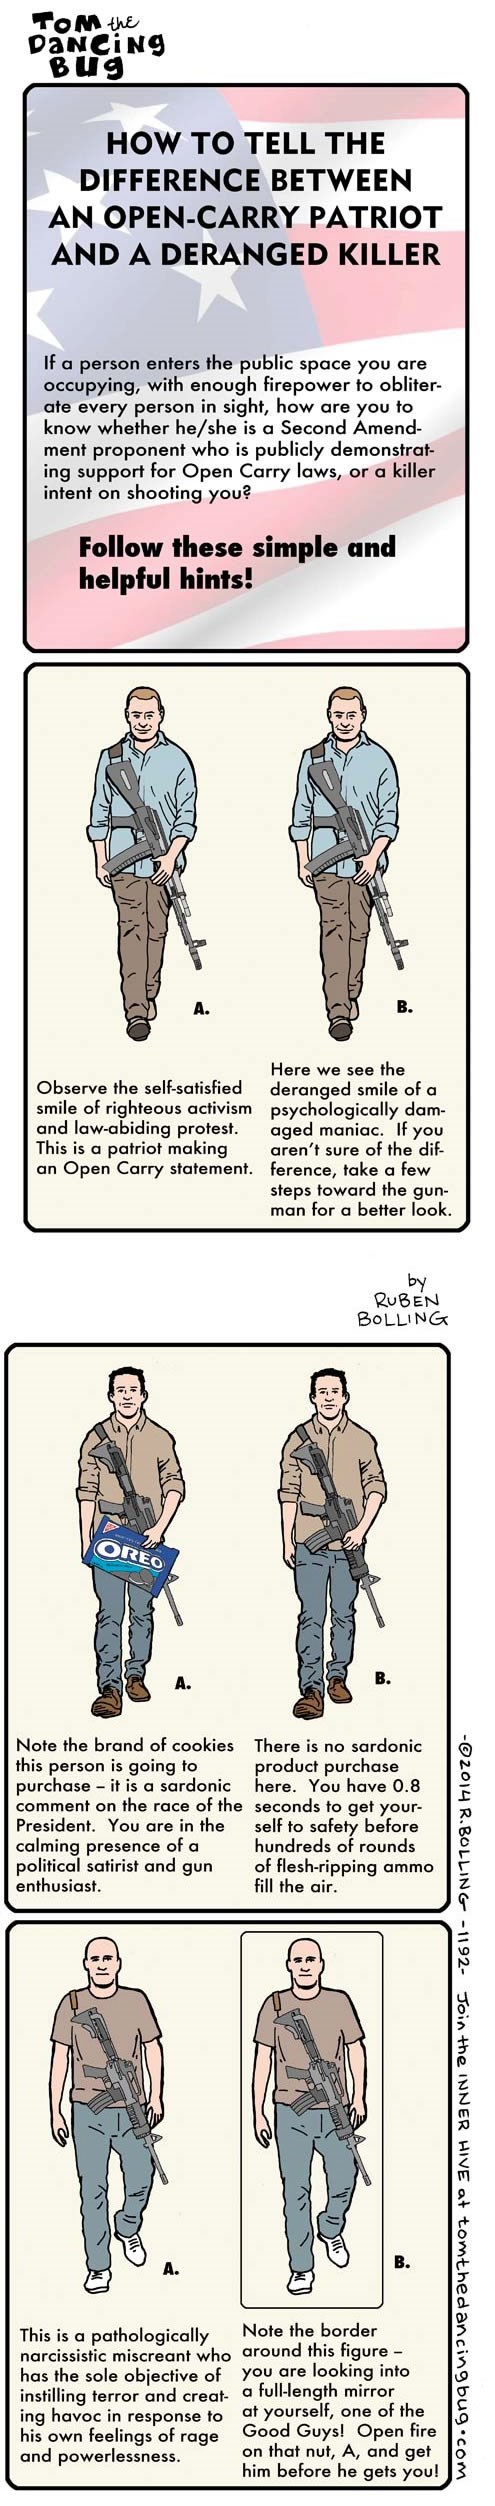 How to Tell Difference Between an Open-Carry Patriot And a Deranged Killer